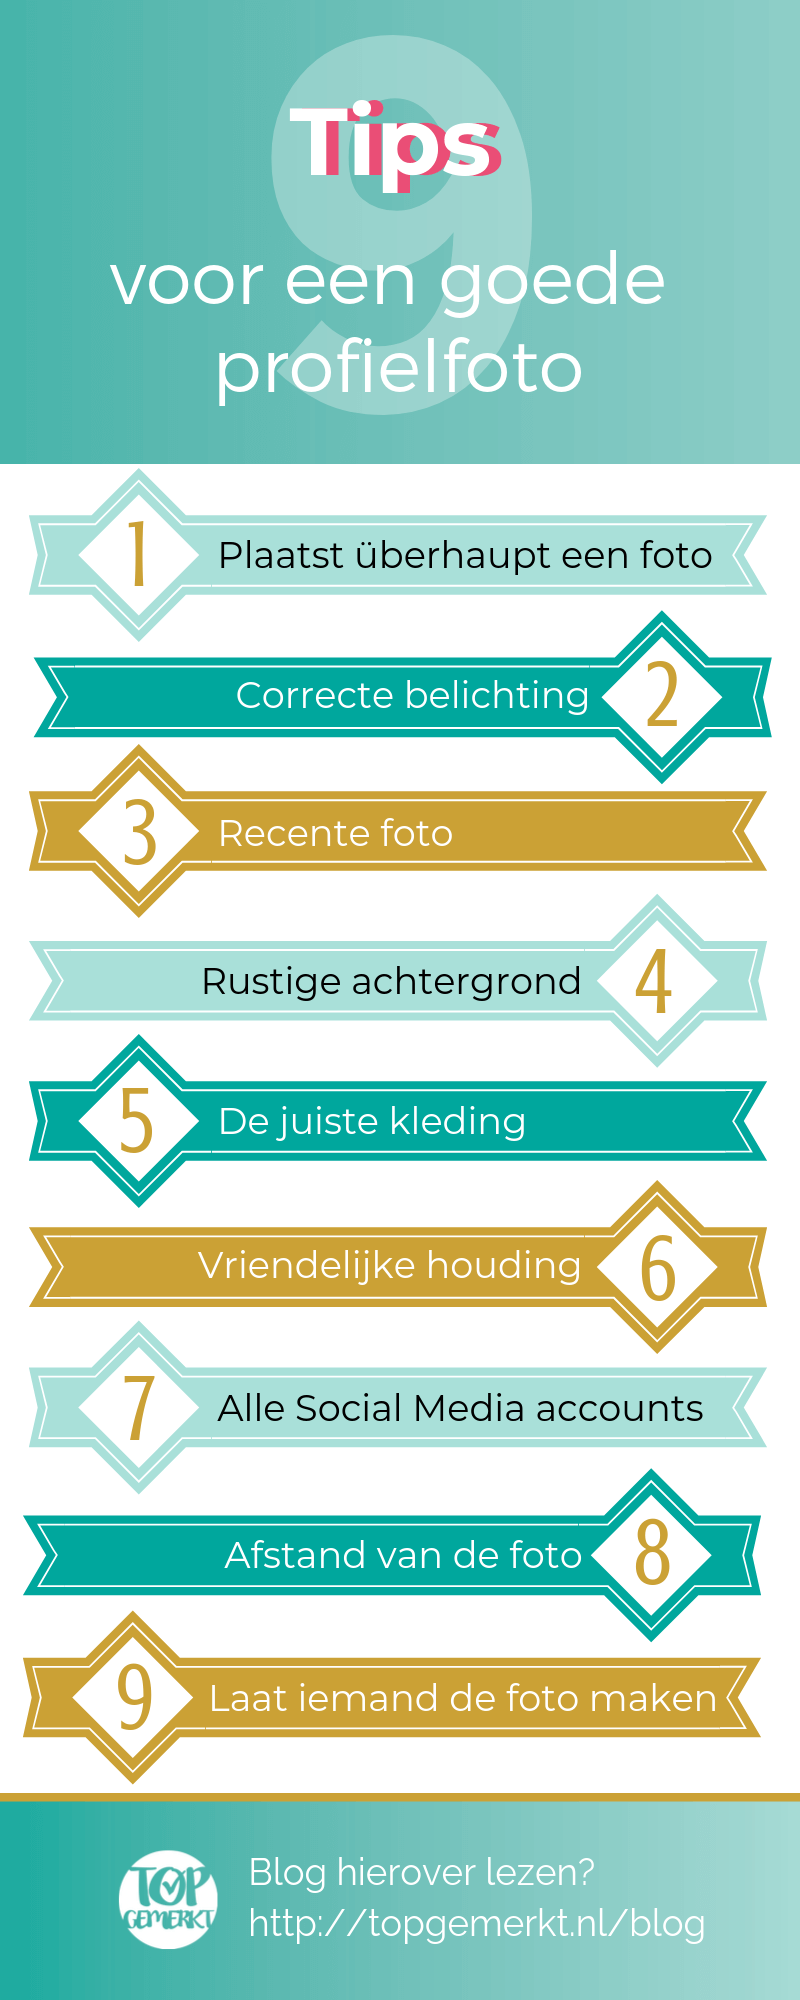 Instagram Training - Business Proof - Infographic profielfoto 9 tips - TopGemerkt